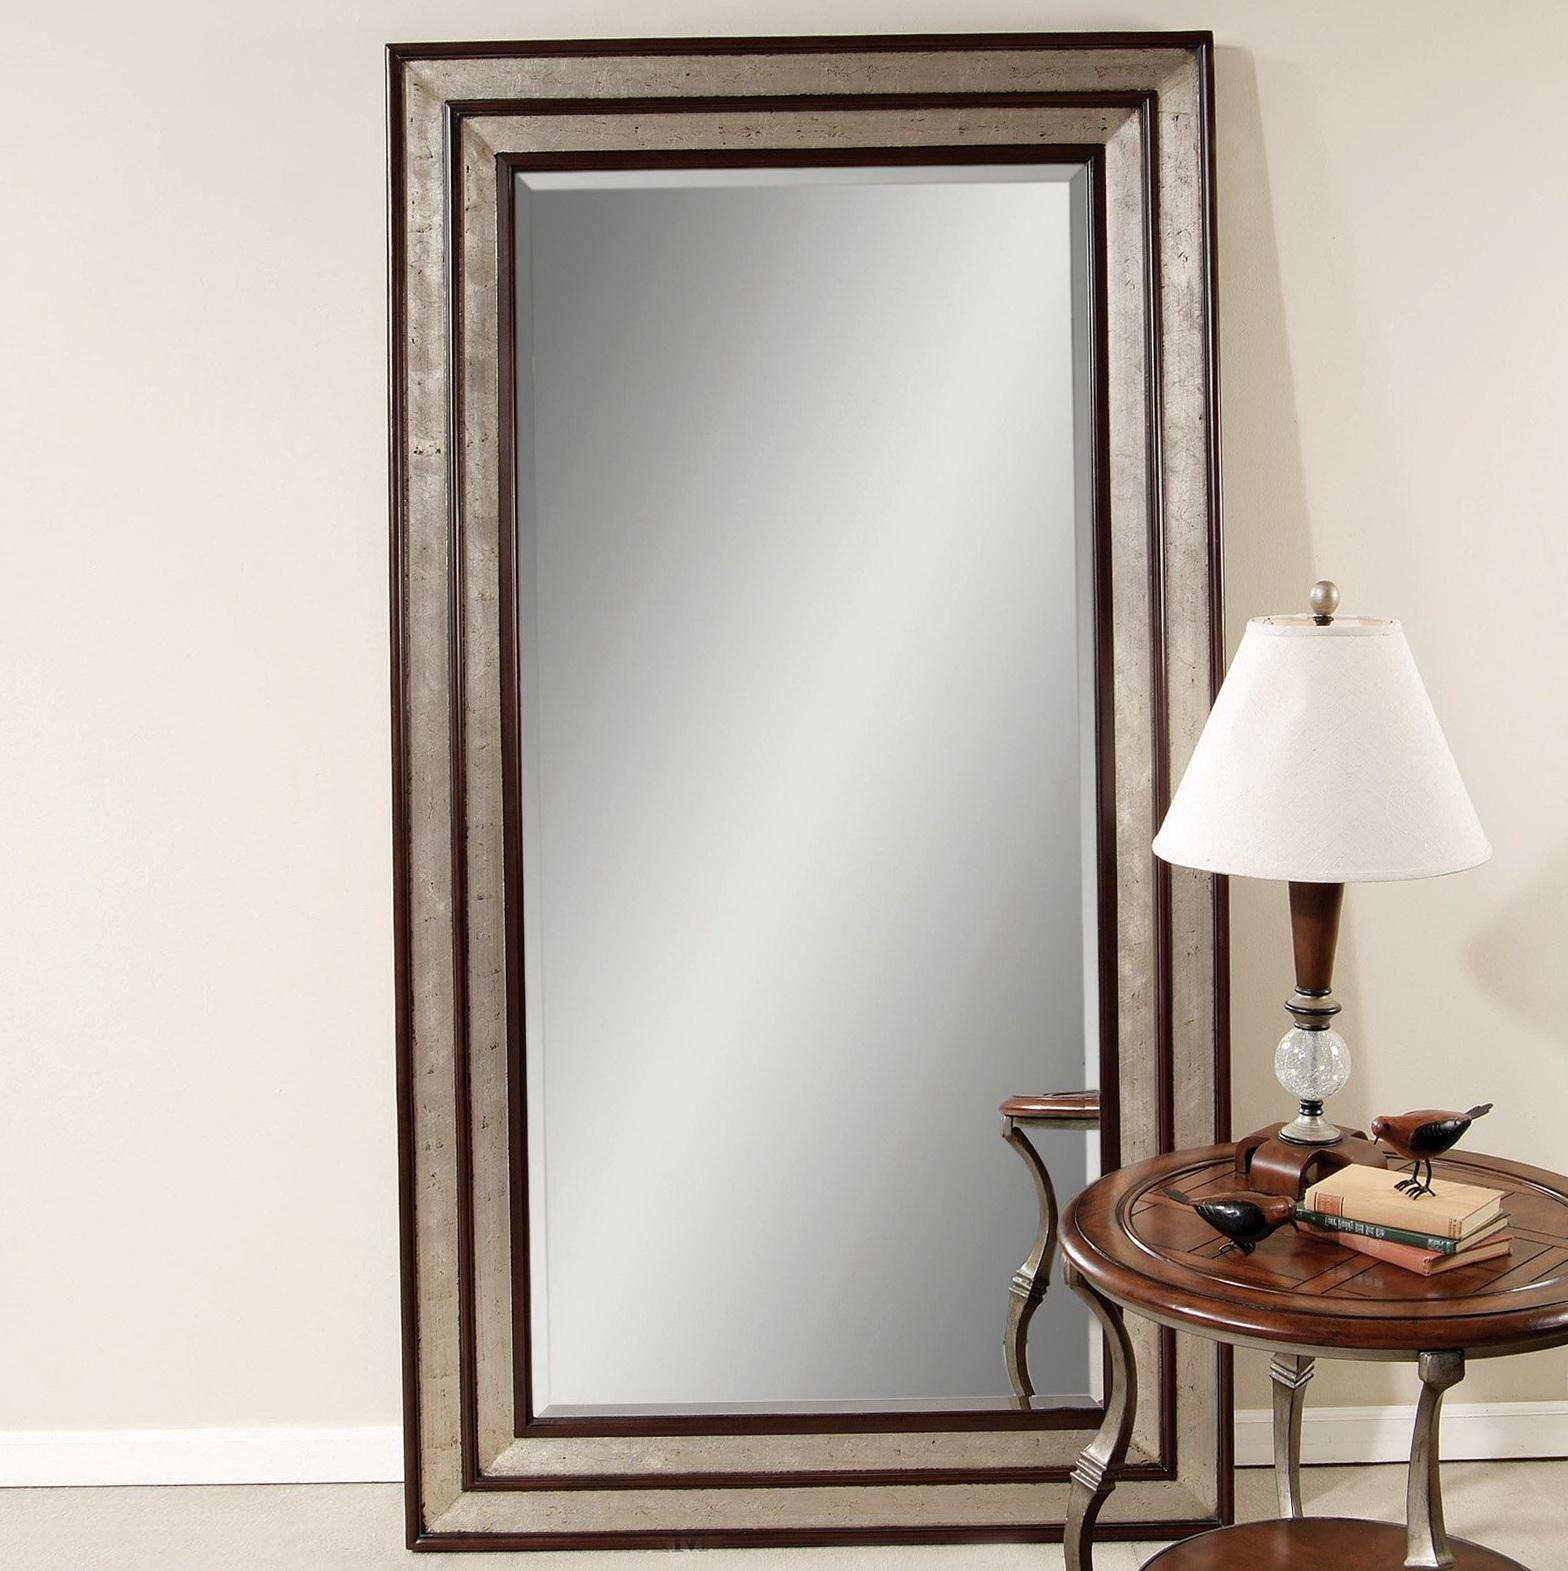 Large Wooden Mirrors For Sale 65 Cool Ideas For Leaning Floor In Large Floor Mirrors (Image 19 of 20)